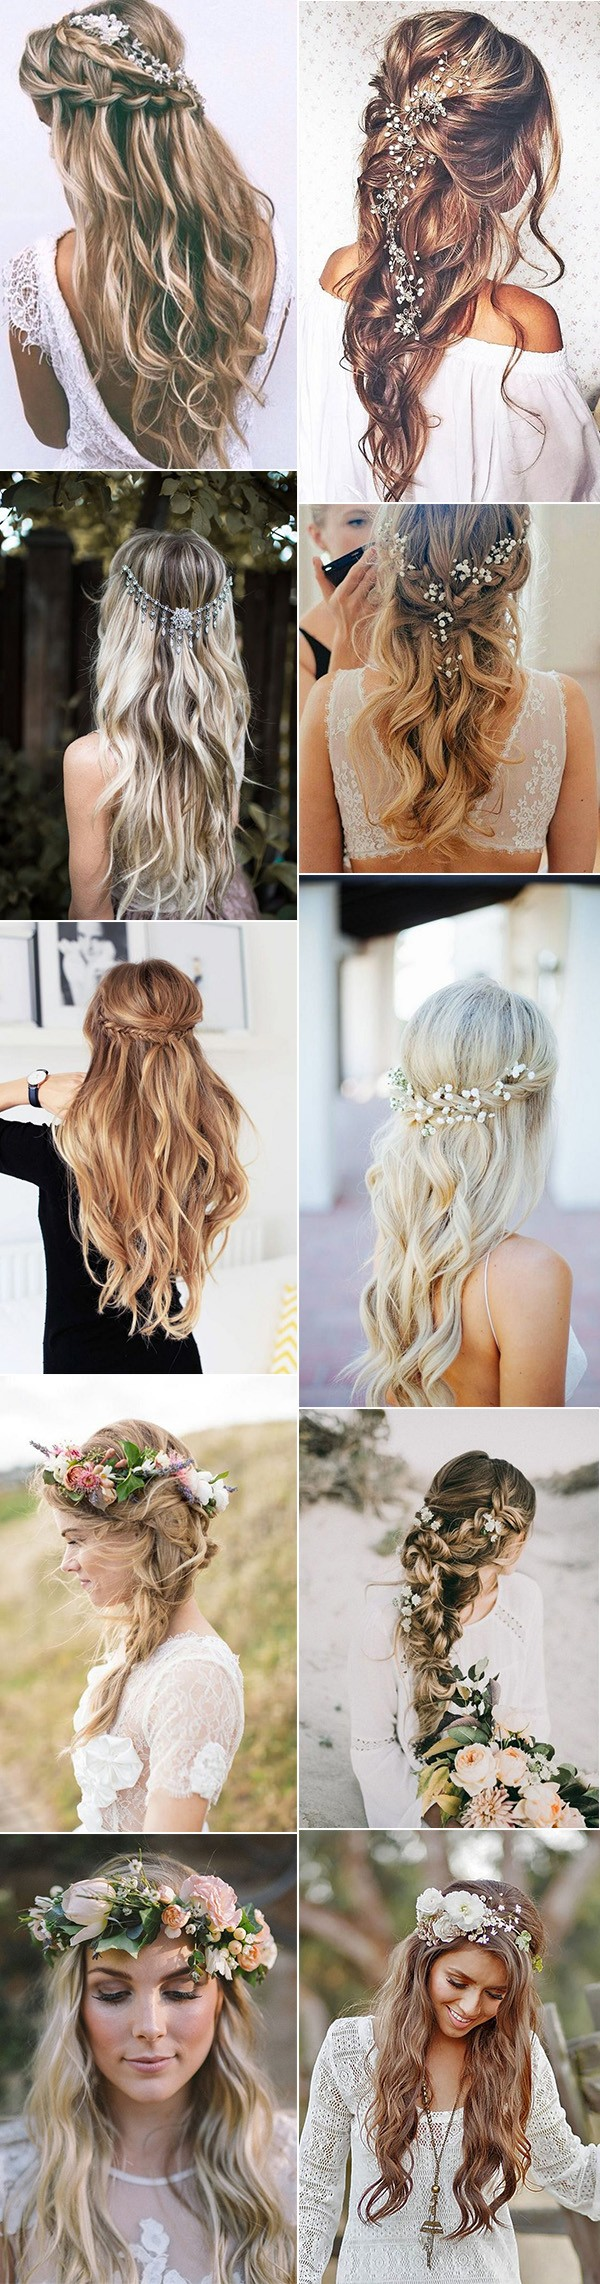 20 Boho Chic Wedding Hairstyles For Your Big Day